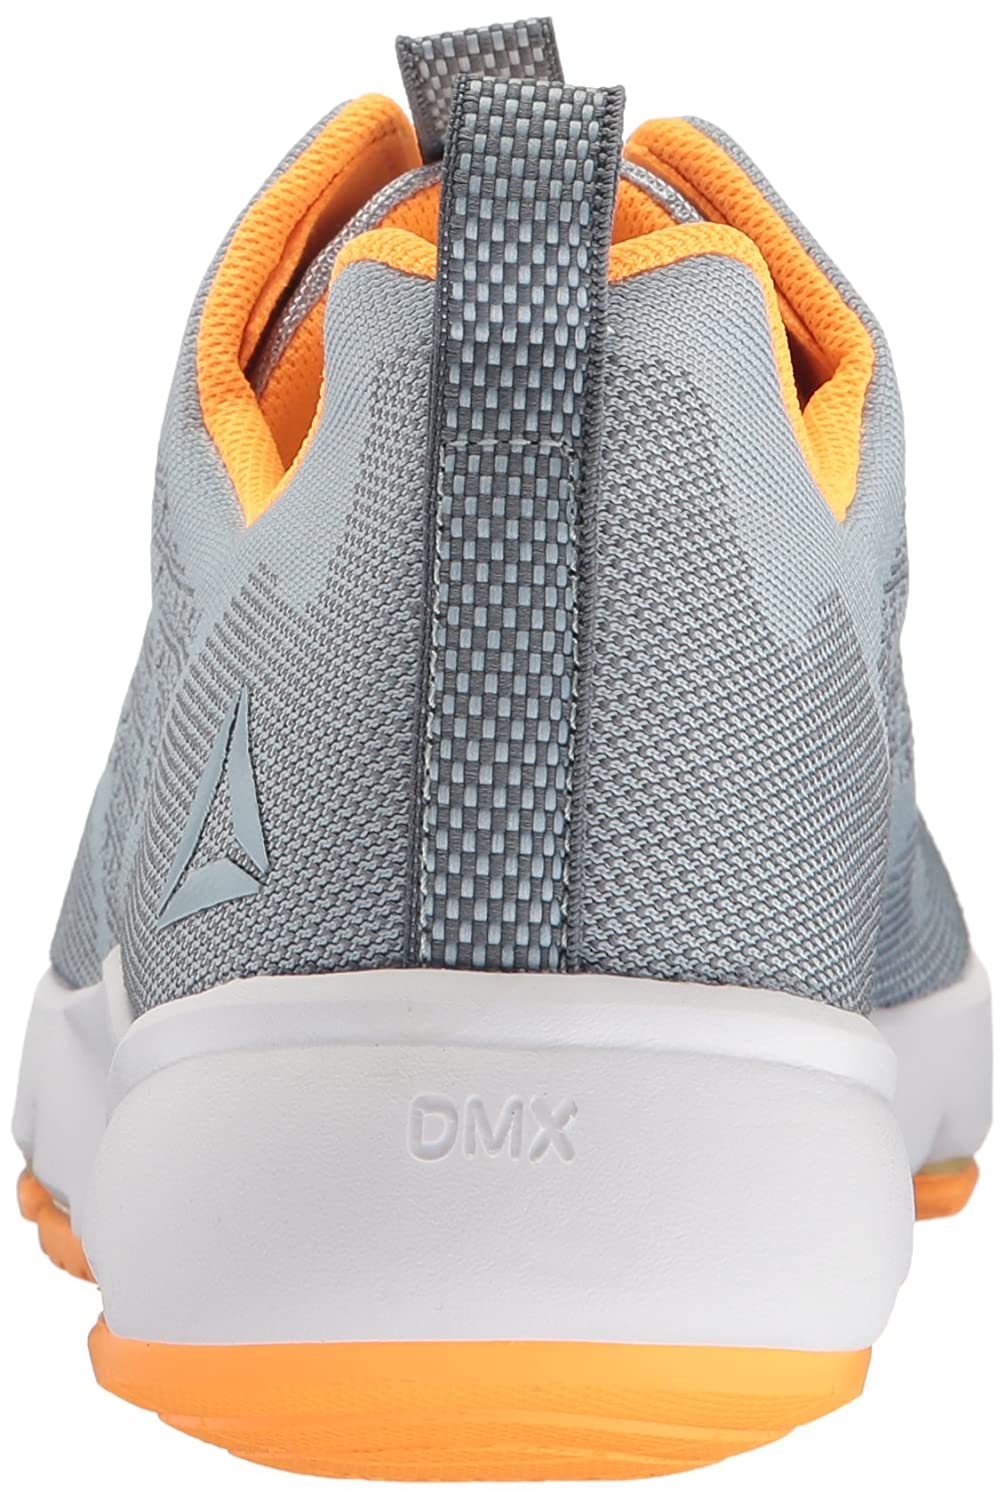 Reebok Women's Cloudride LS DMX Walking Shoe B01HH8LXWG 6.5 B(M) US|Gable Grey/Stonewash/White/Fire Spark